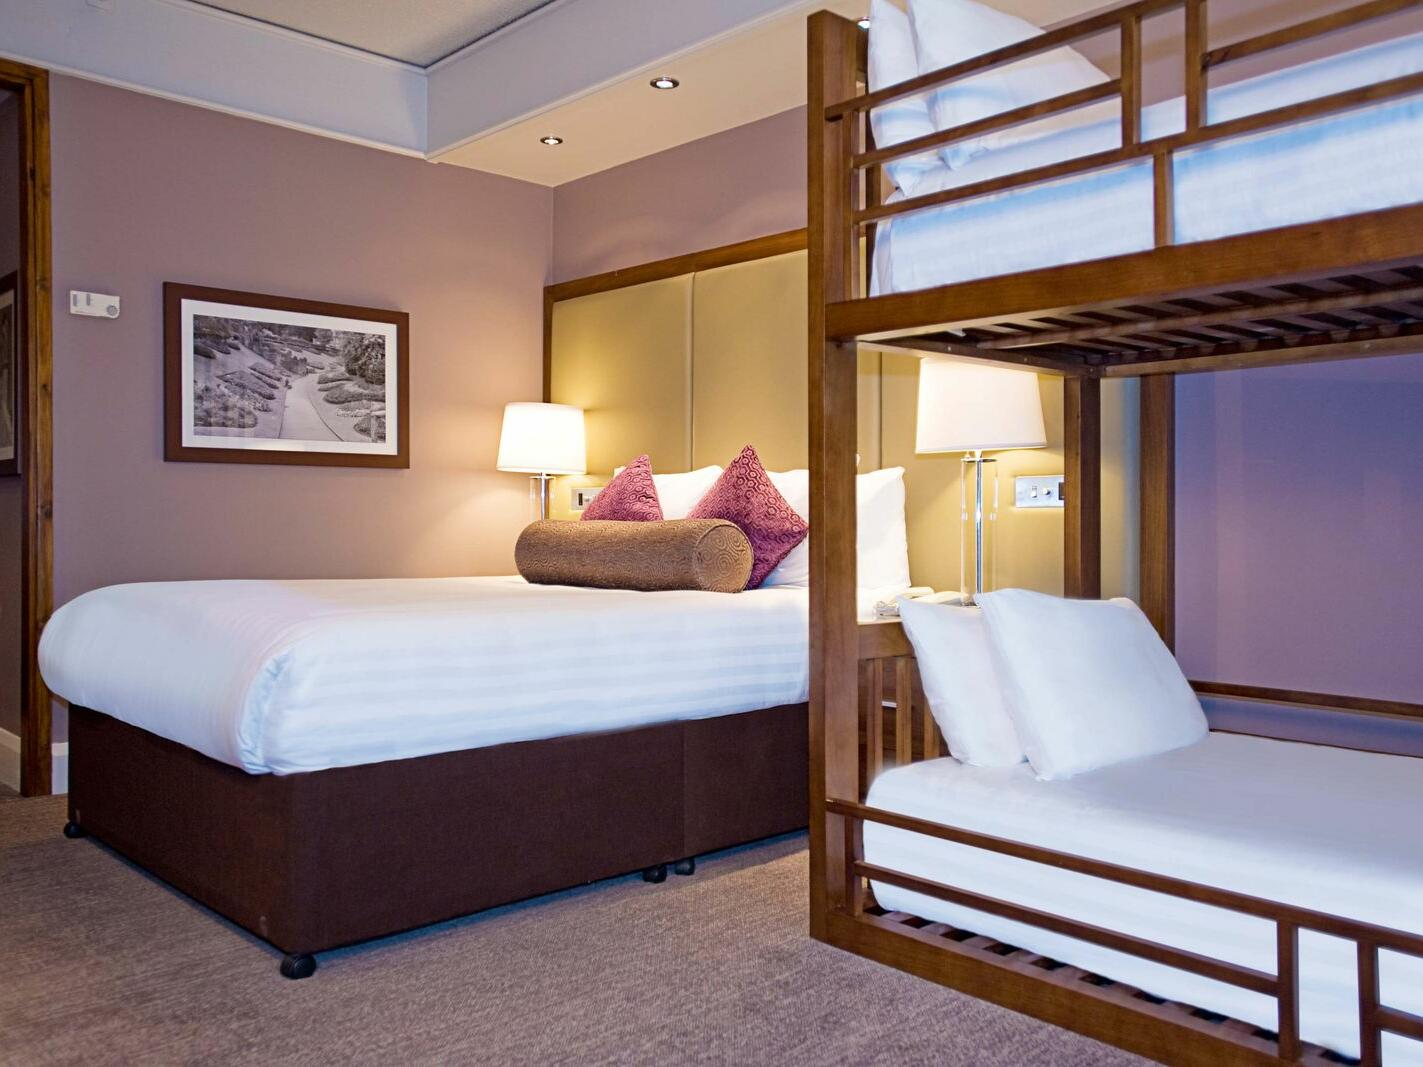 The Family King Room at Sandman Signature London Gatwick Hotel with one king bed (with premium pillow-top) and two bunk beds